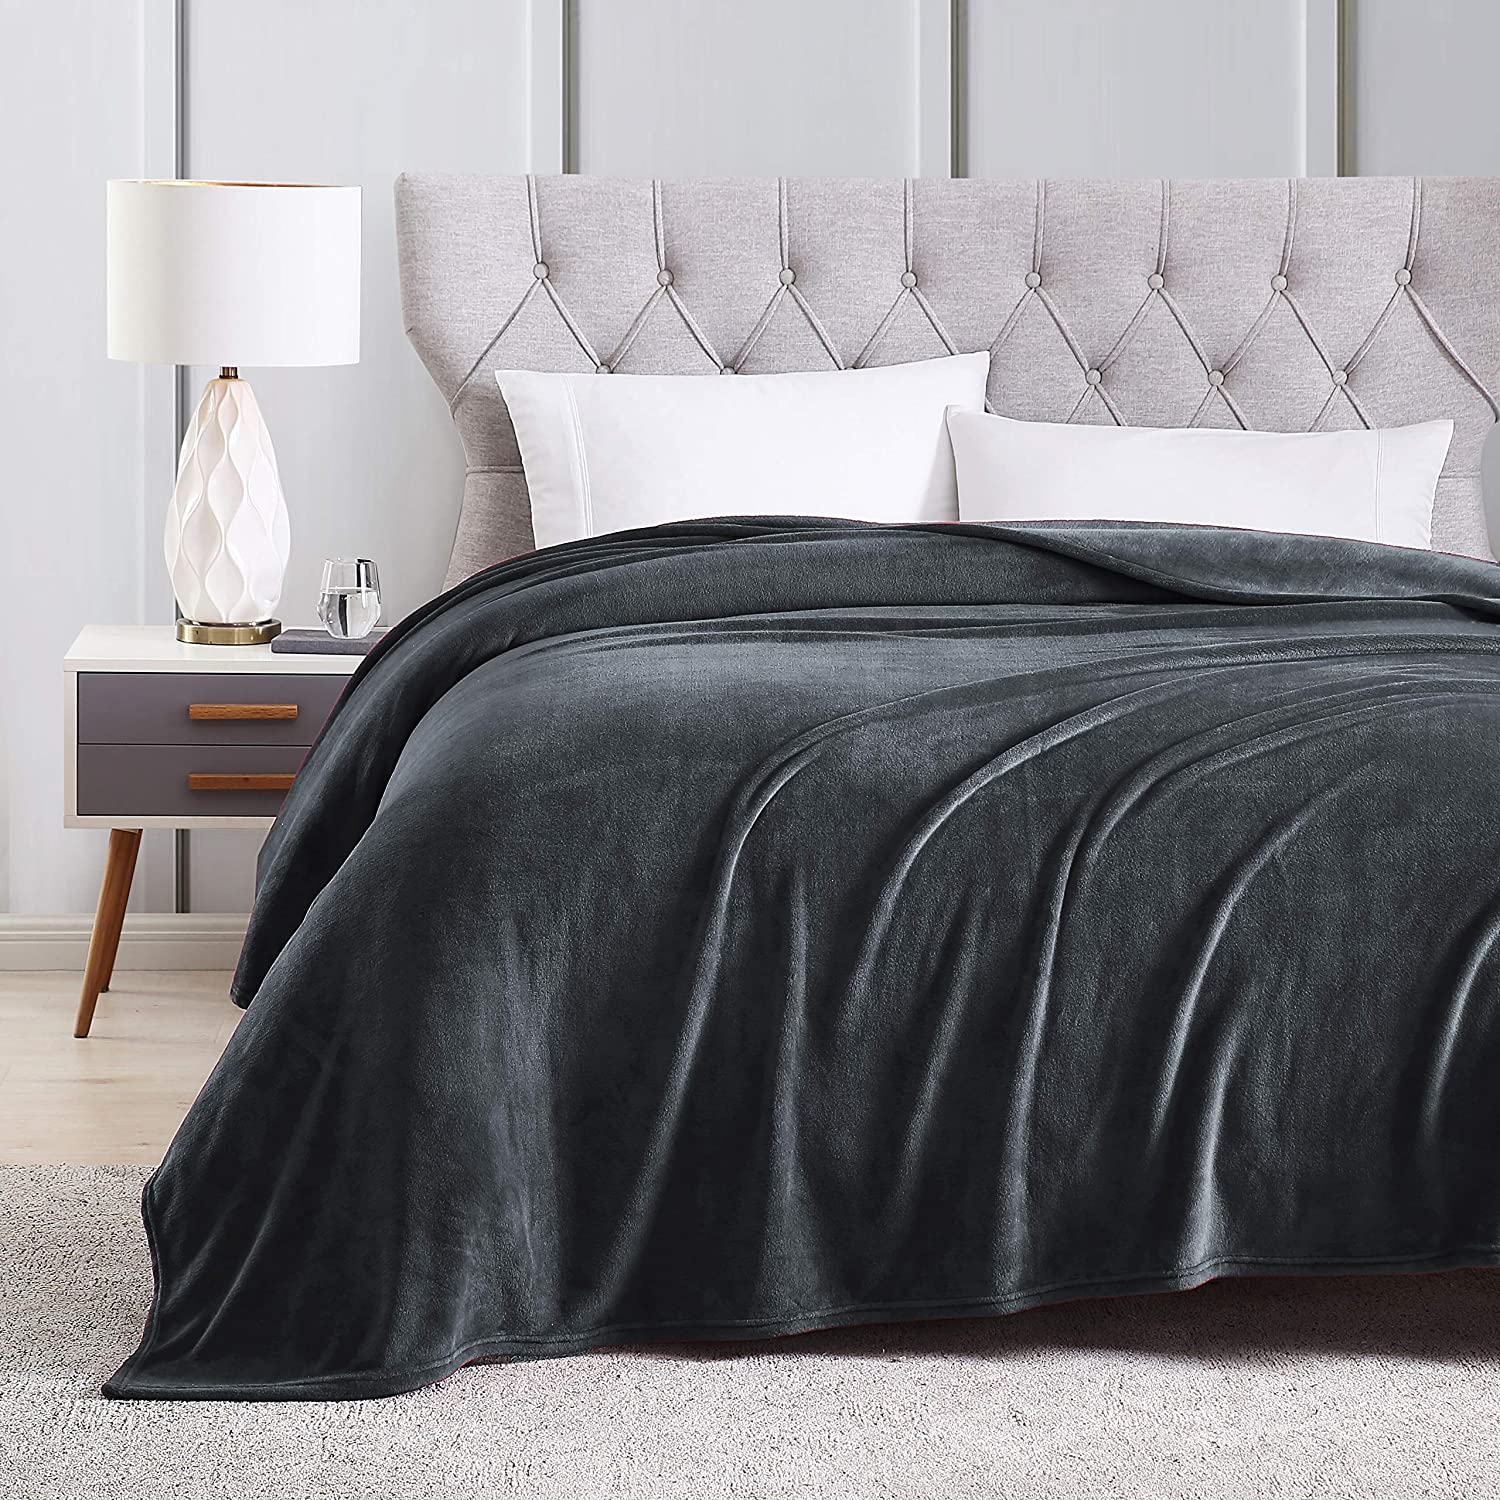 EXQ Home Fleece Blanket King Size Charcoal Grey Throw Blanket for Bed or Couch - Microfiber Fuzzy Flannel Blanket for Adults or Kids